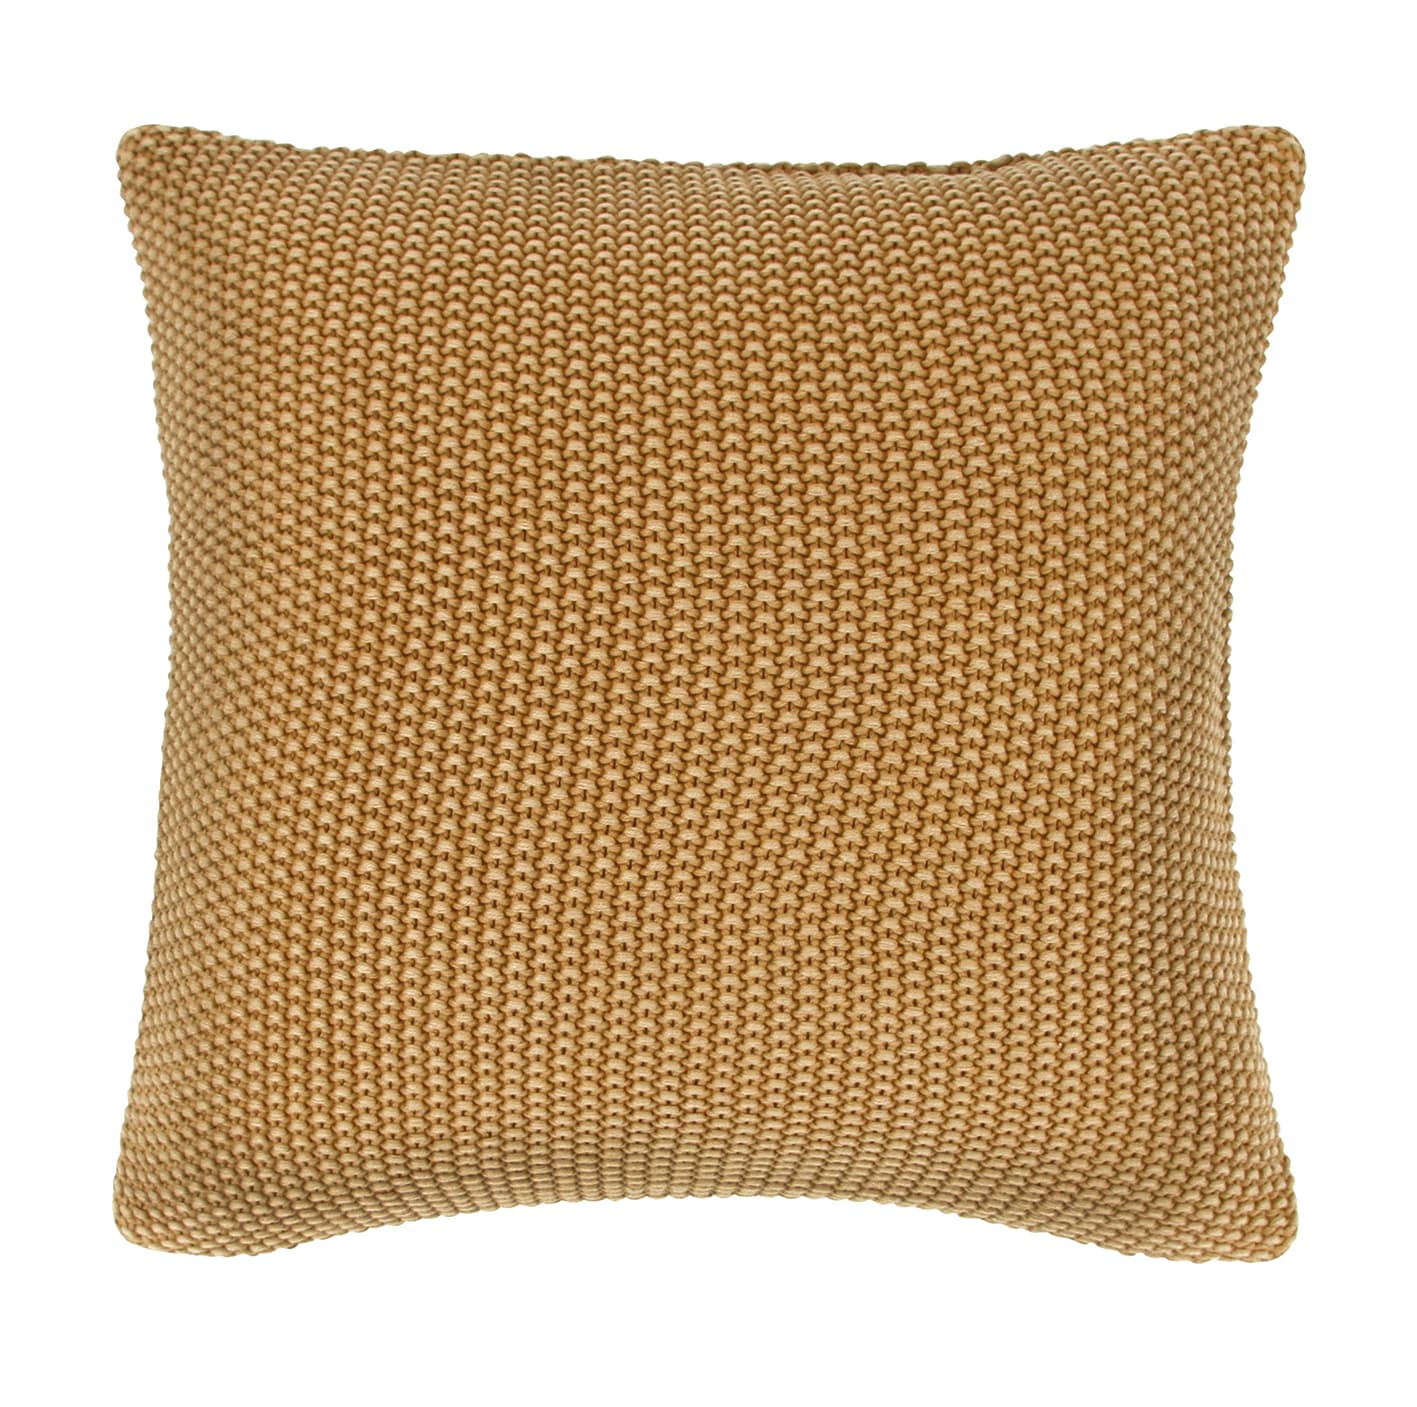 Wallace Cotton Wheat Louis Square Cushion Cover